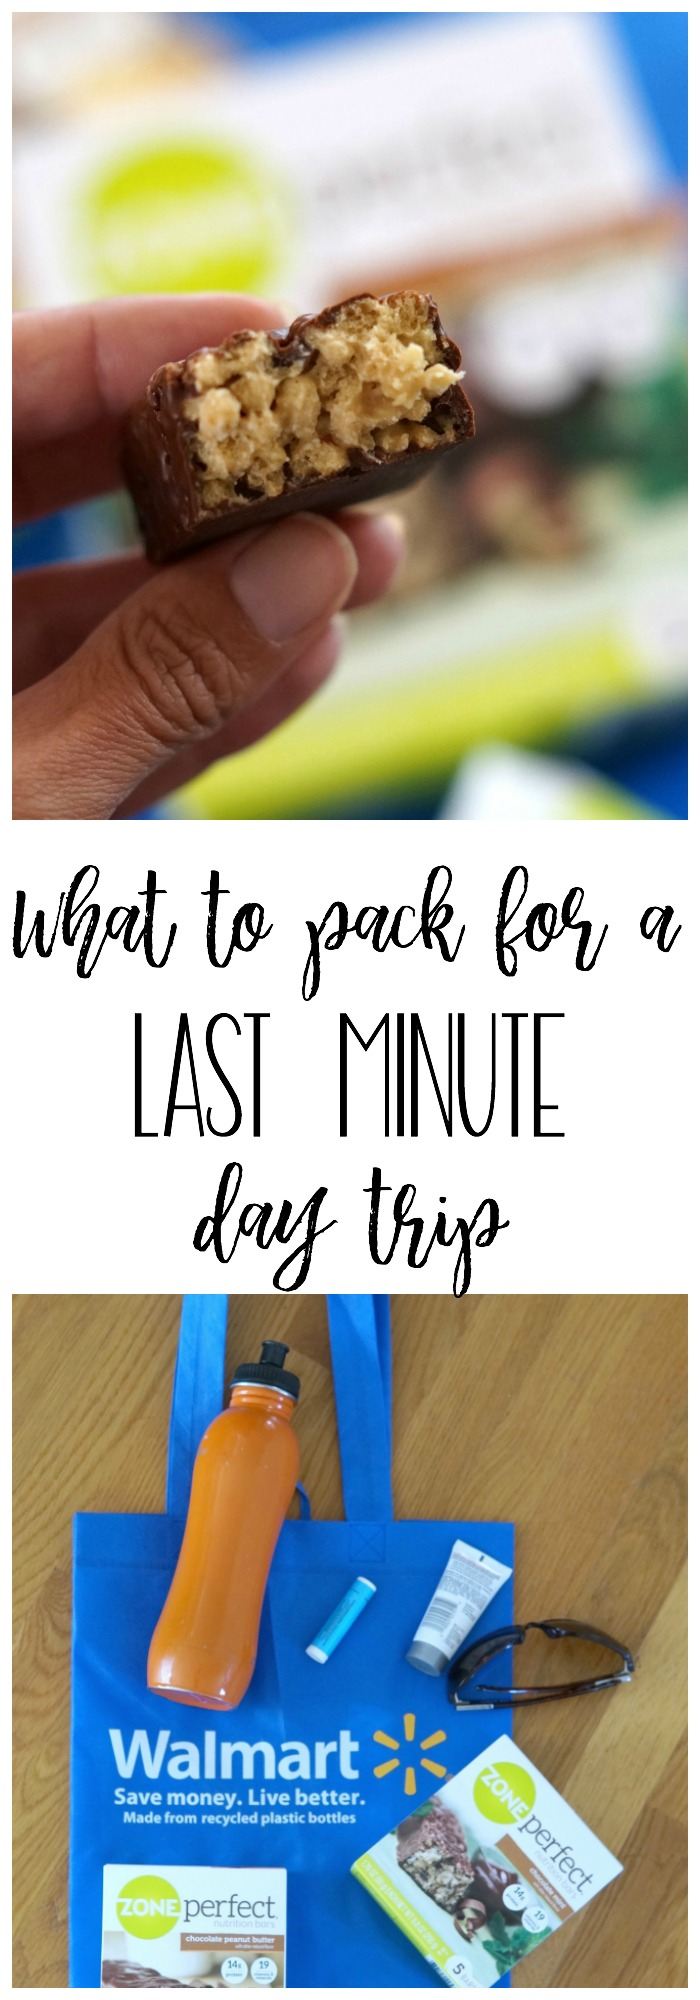 Planning a quick, last minute day trip getaway? Follow these easy tips for what to pack for a last minute day trip! #MyLittleWins